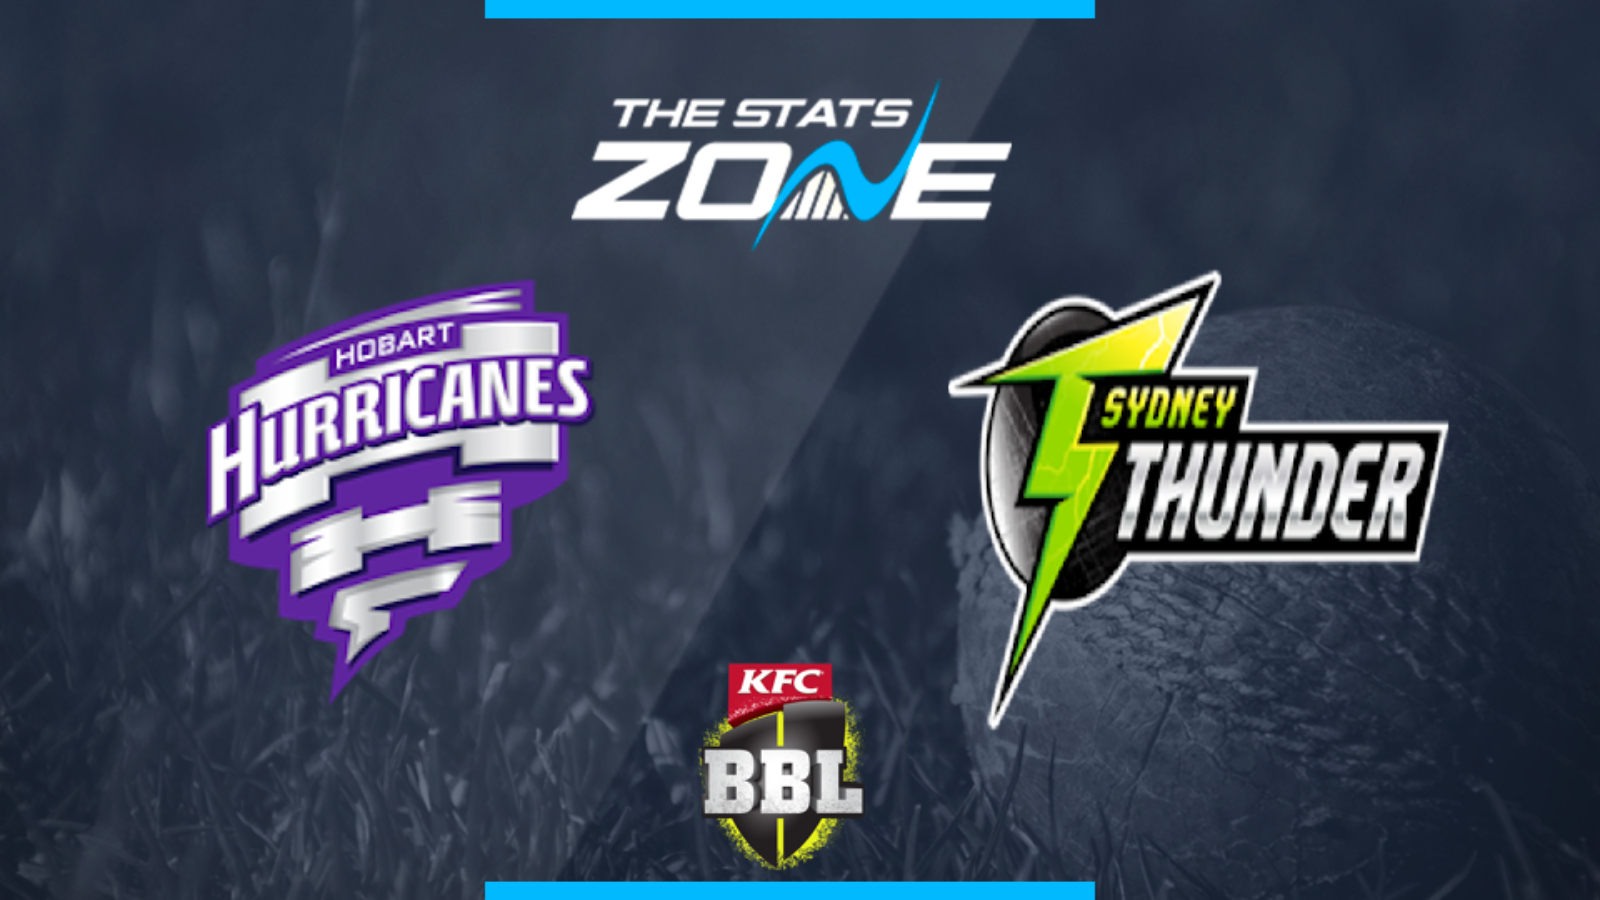 Hobart hurricanes v sydney thunder betting preview goal cryptocurrency mining news south